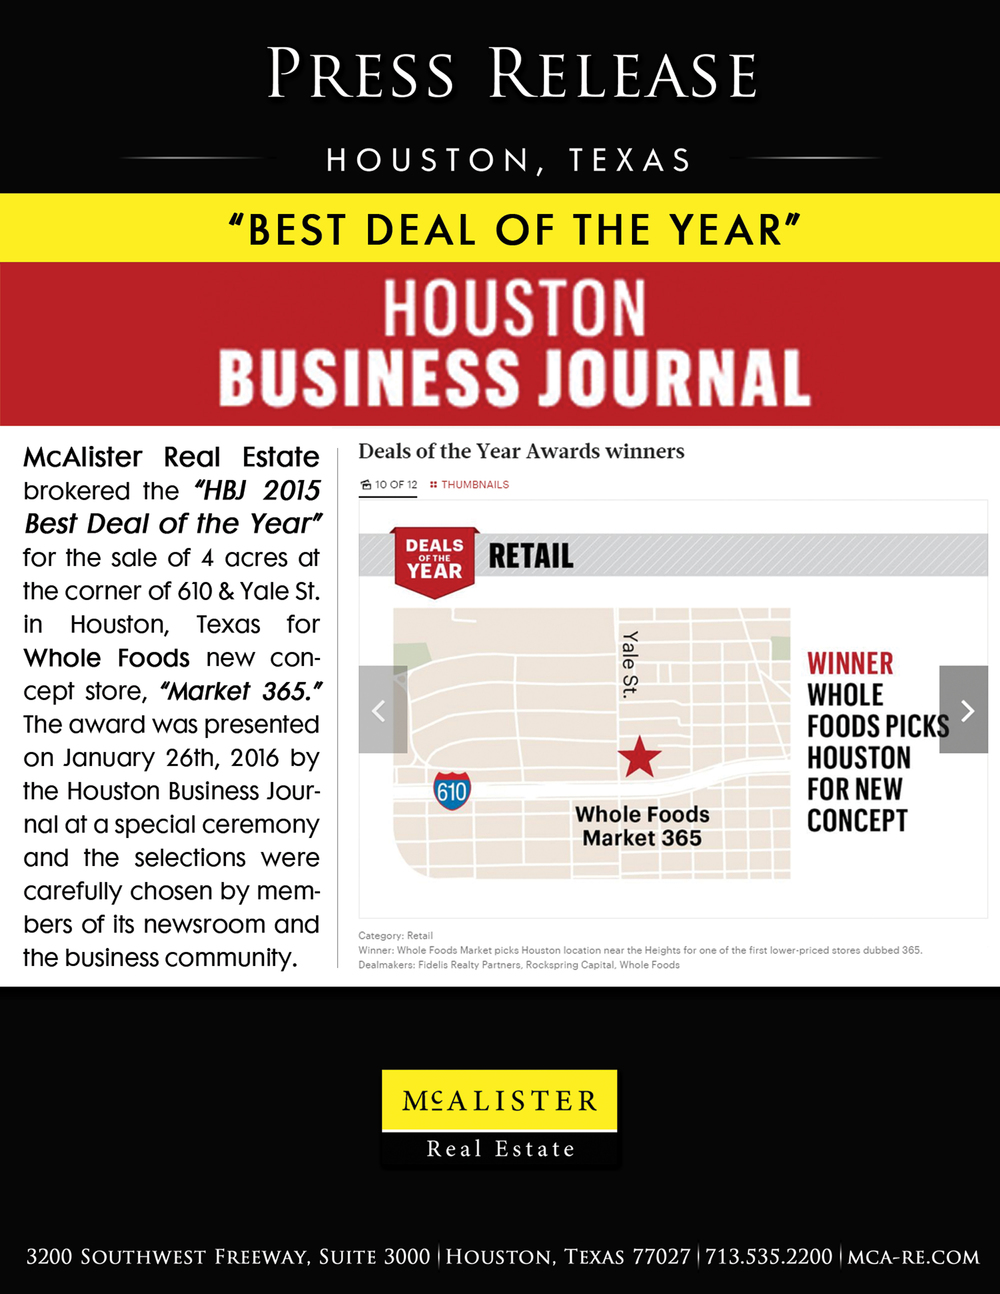 Houston Business Journal Deal of the Year McAlister Real Estate